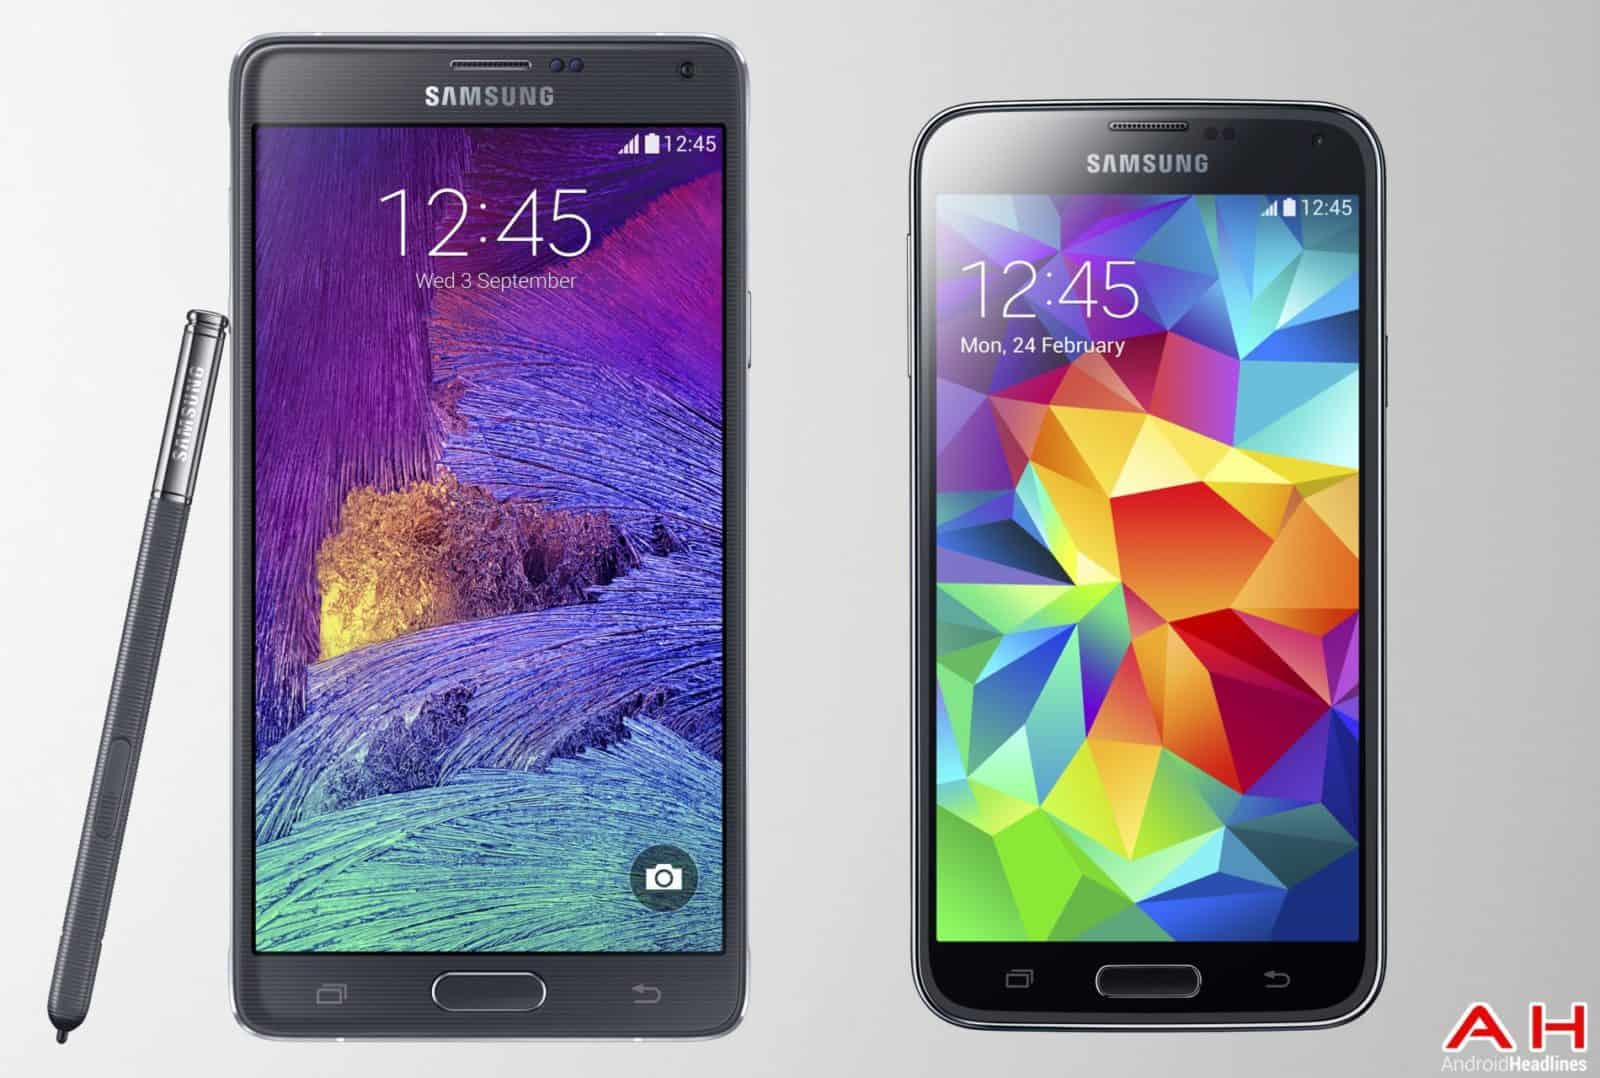 AH Samsung Galaxy Note 4 vs Samsung Galaxy S5